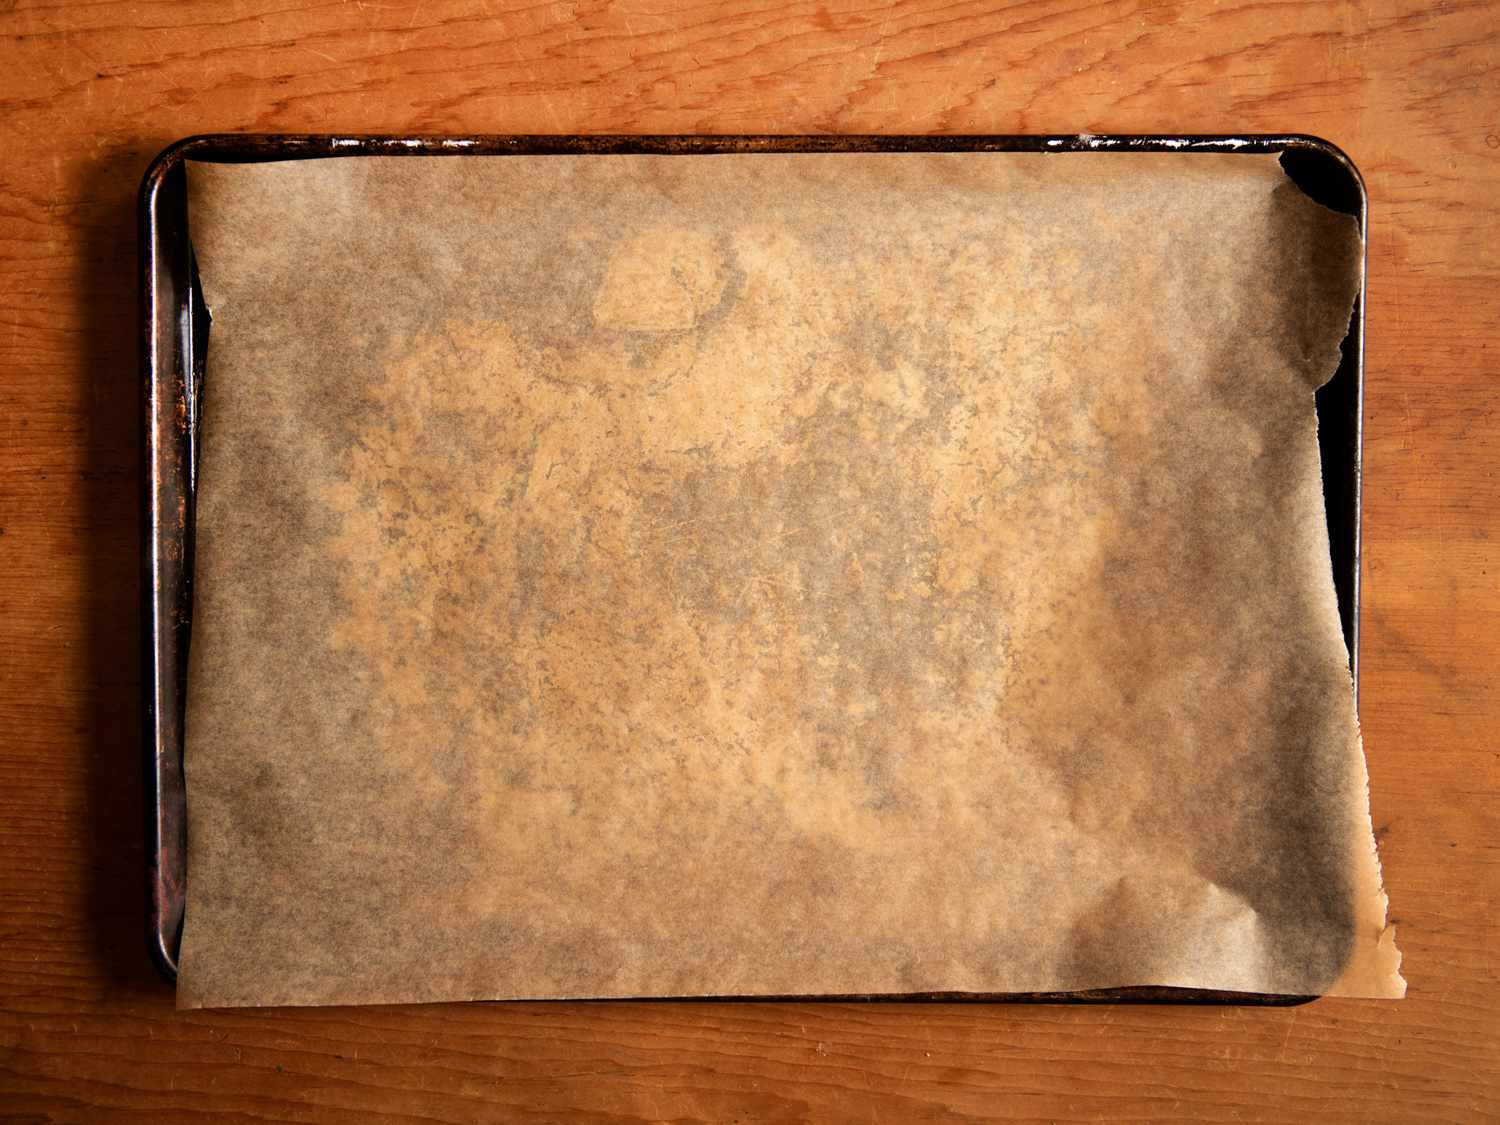 A rimmed baking sheet lined with parchment paper on a wood counter.